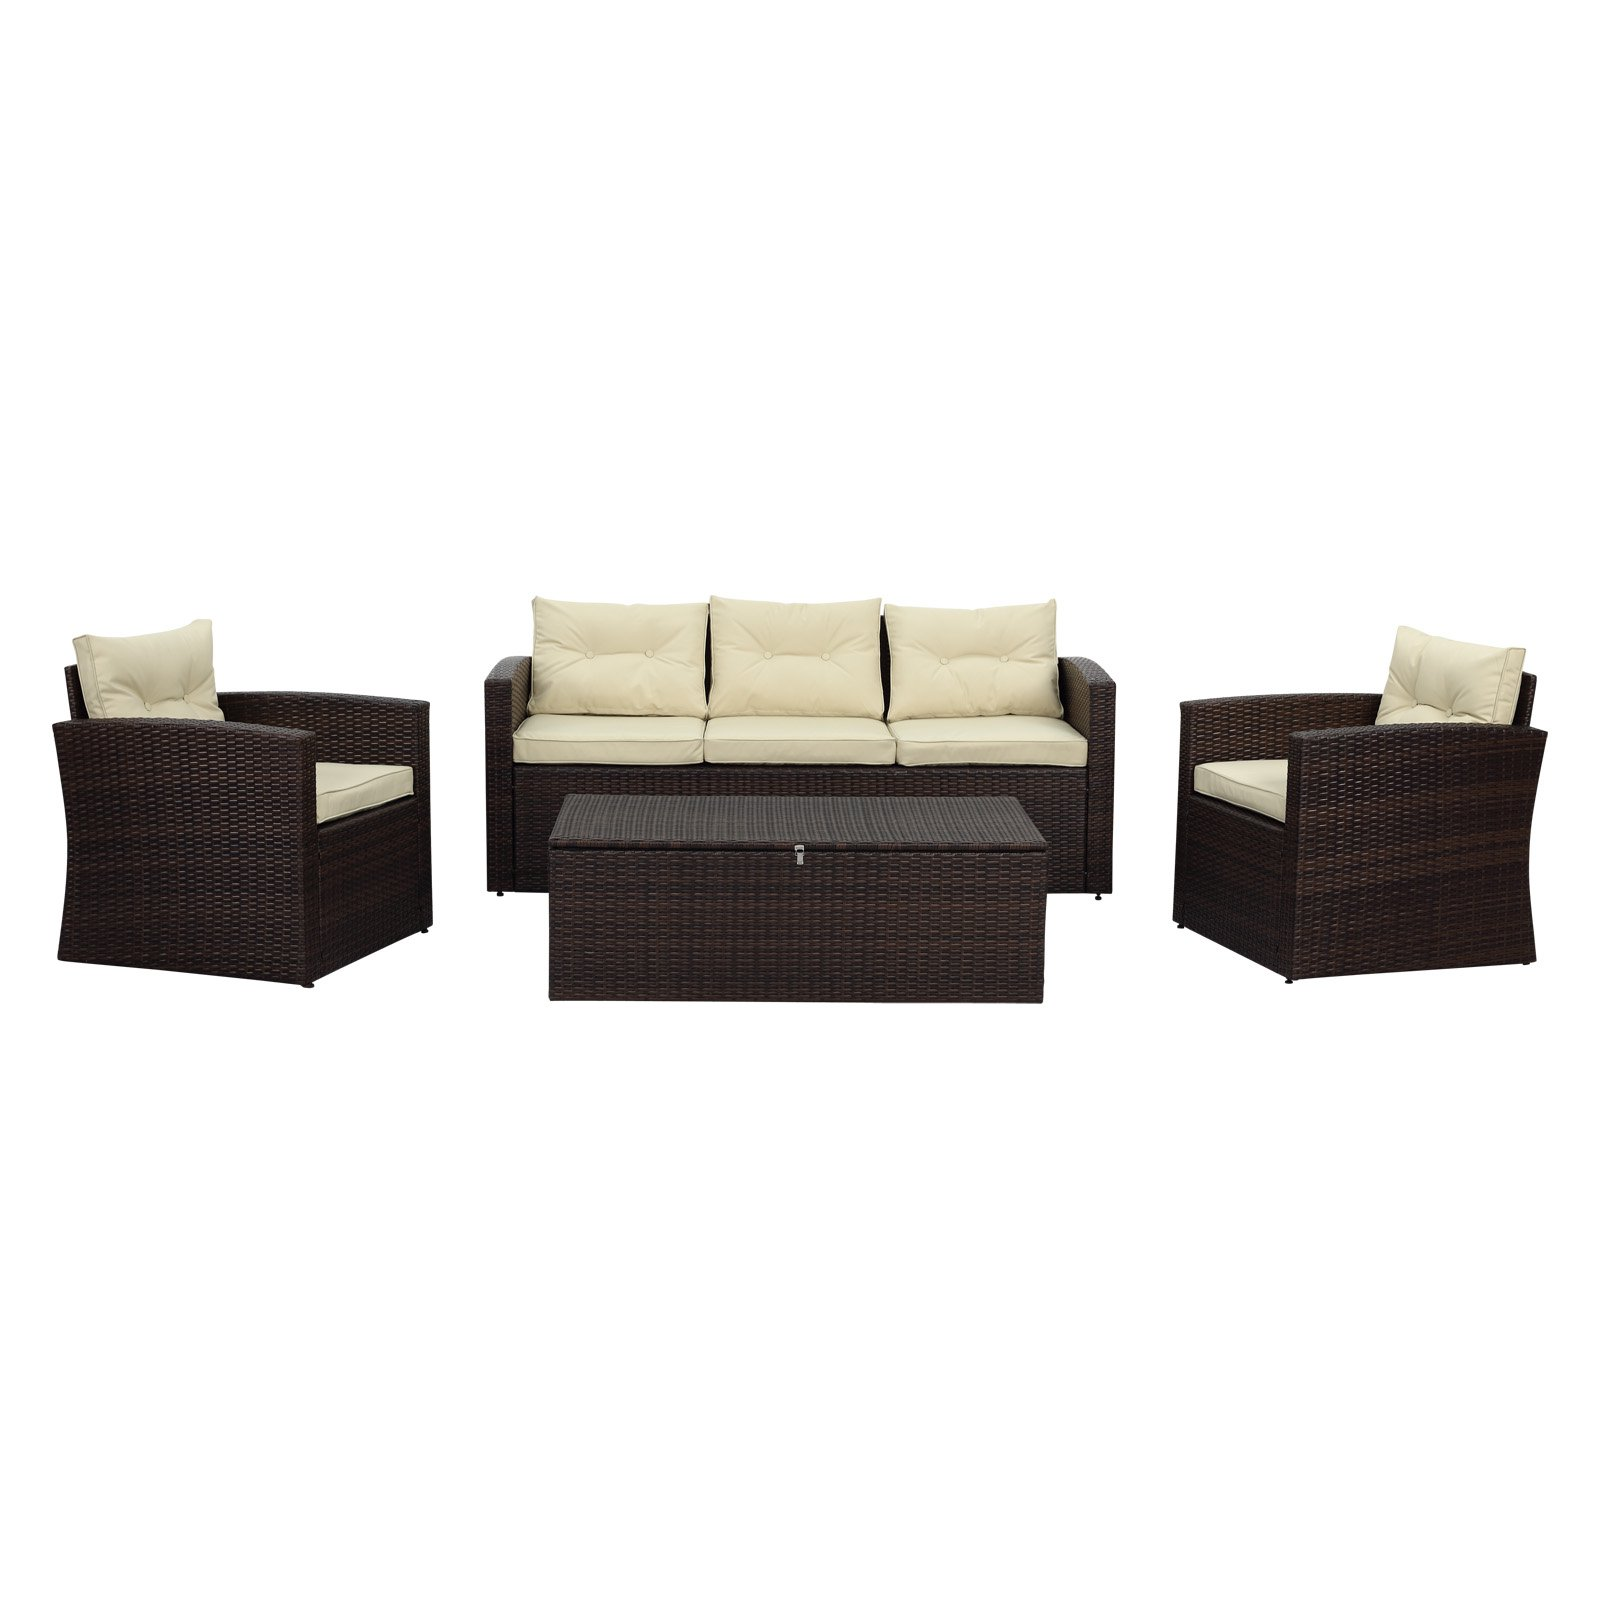 Thy-Hom Rio Wicker 5 Seat All-Weather 4 Piece Patio Conversation Set with Storage by The-Hom